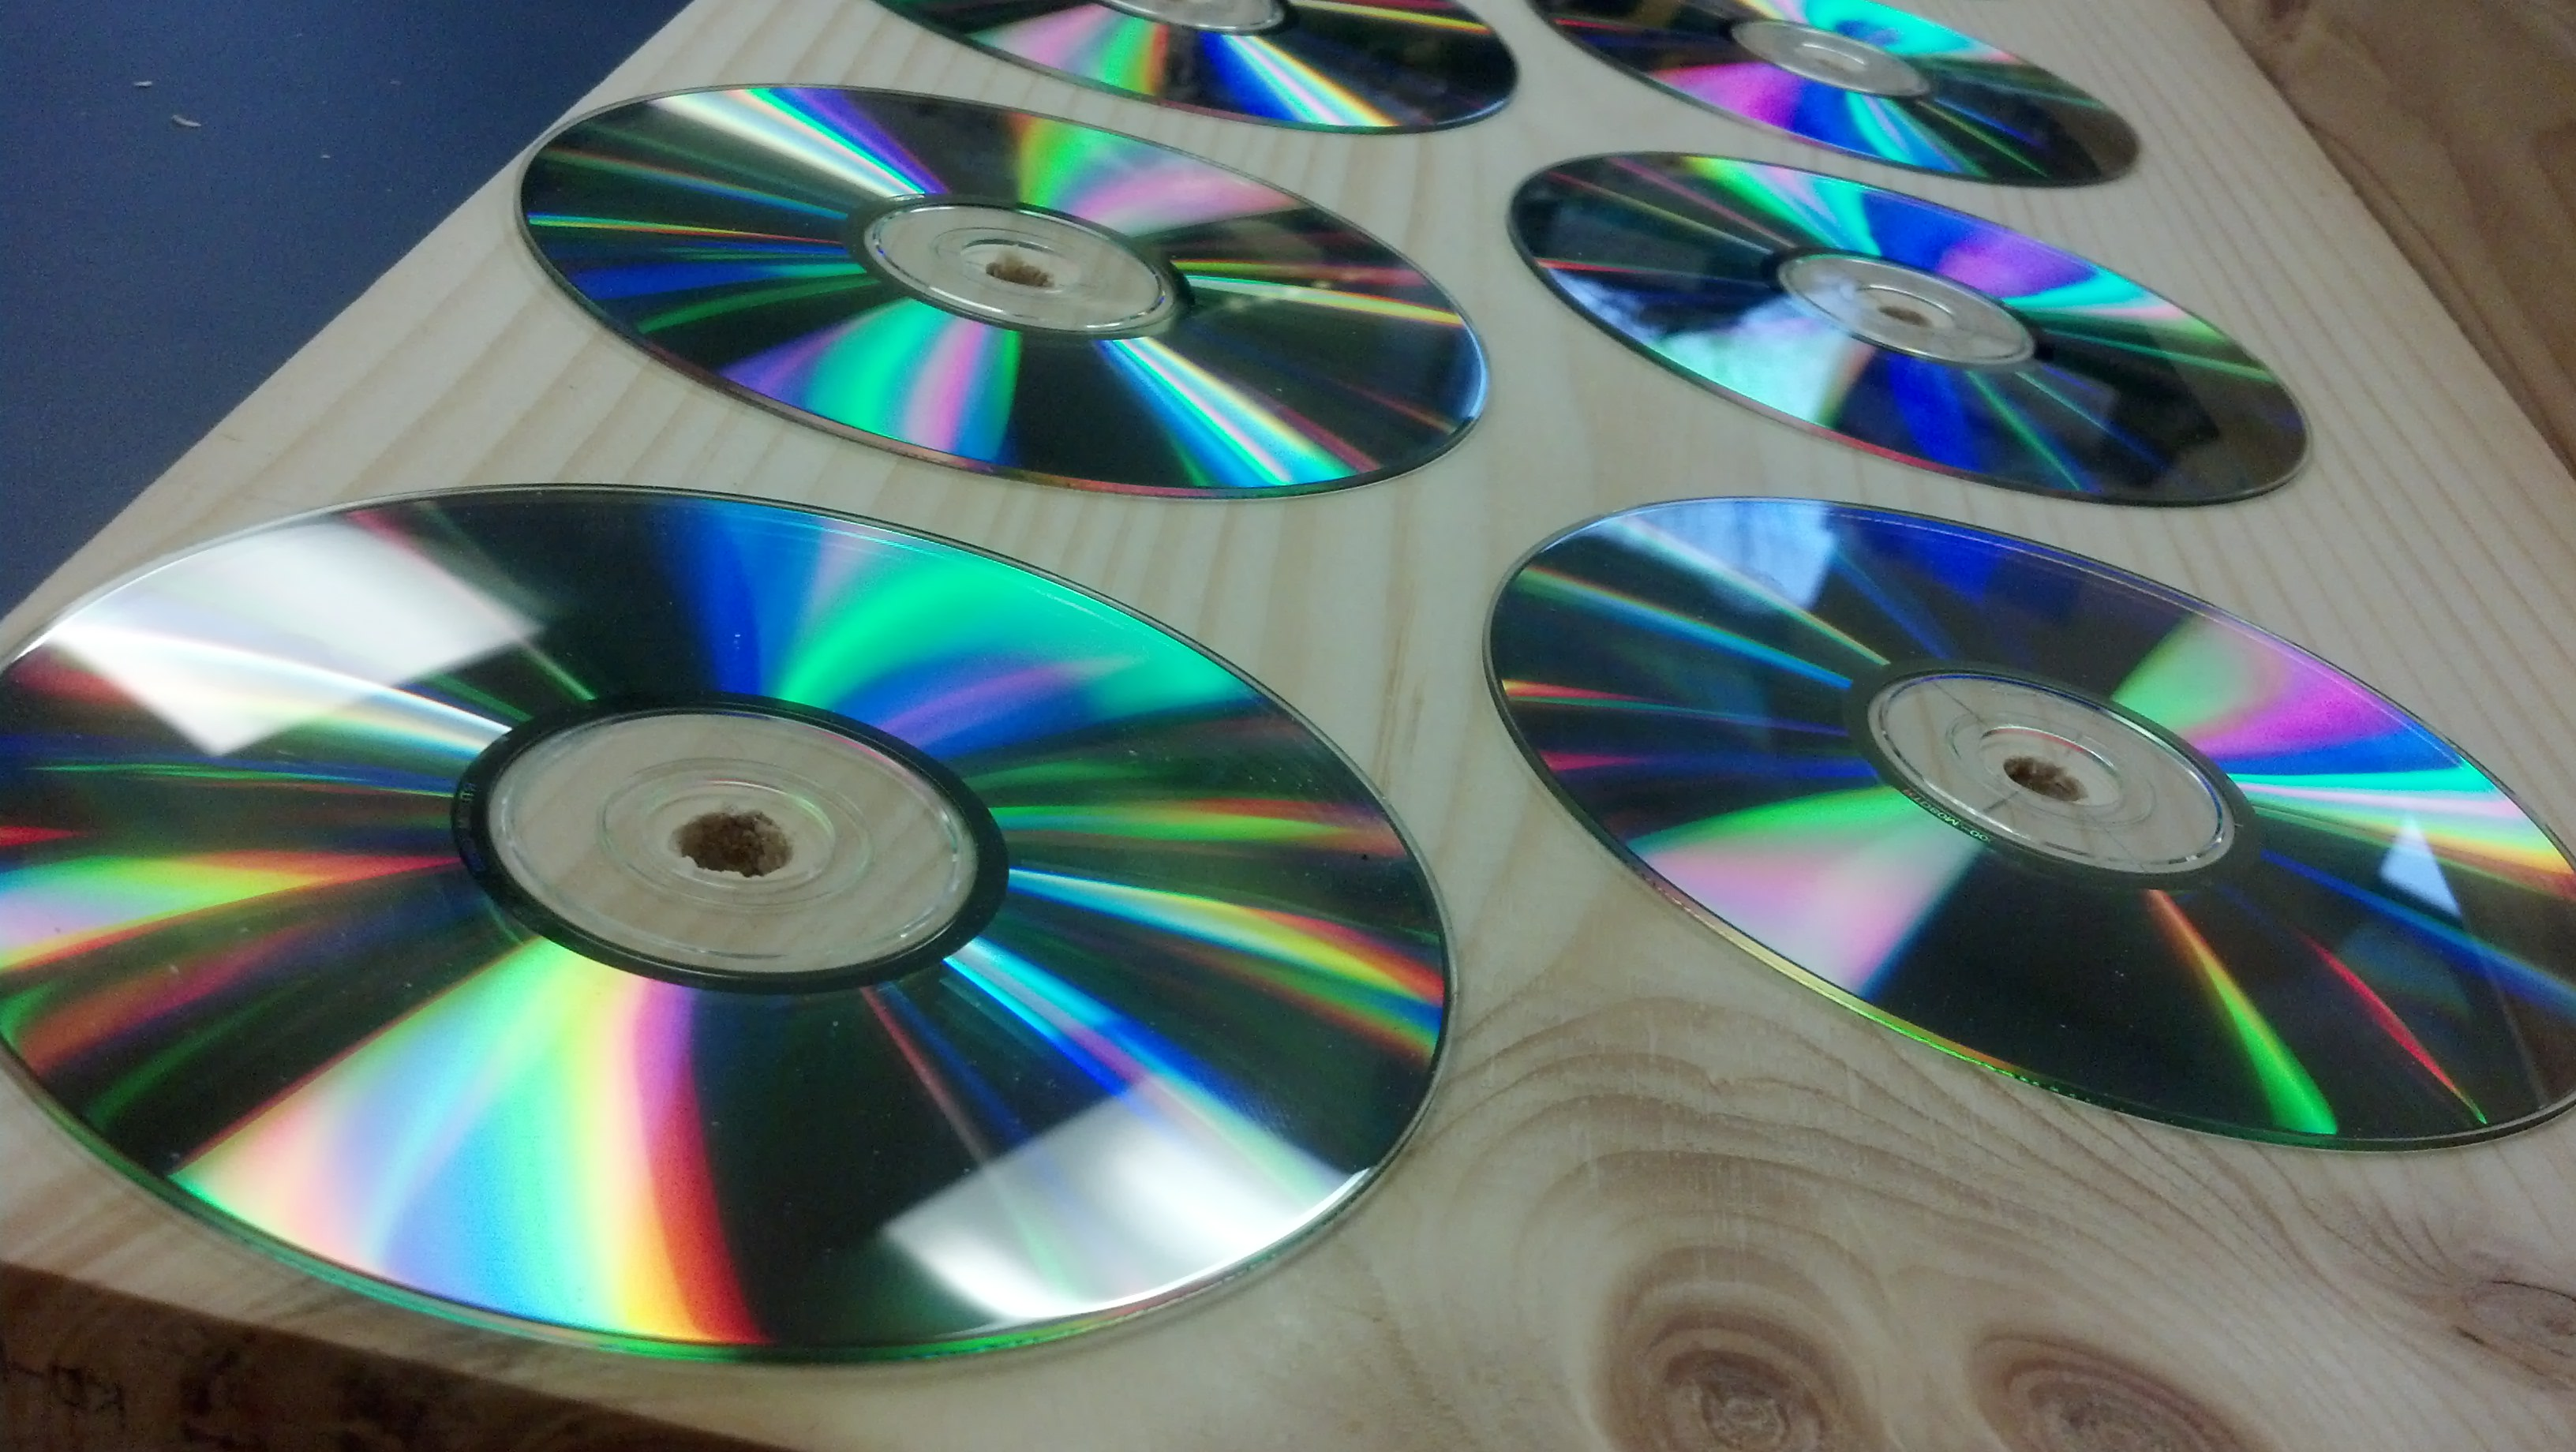 Picture of Glue on the CDs